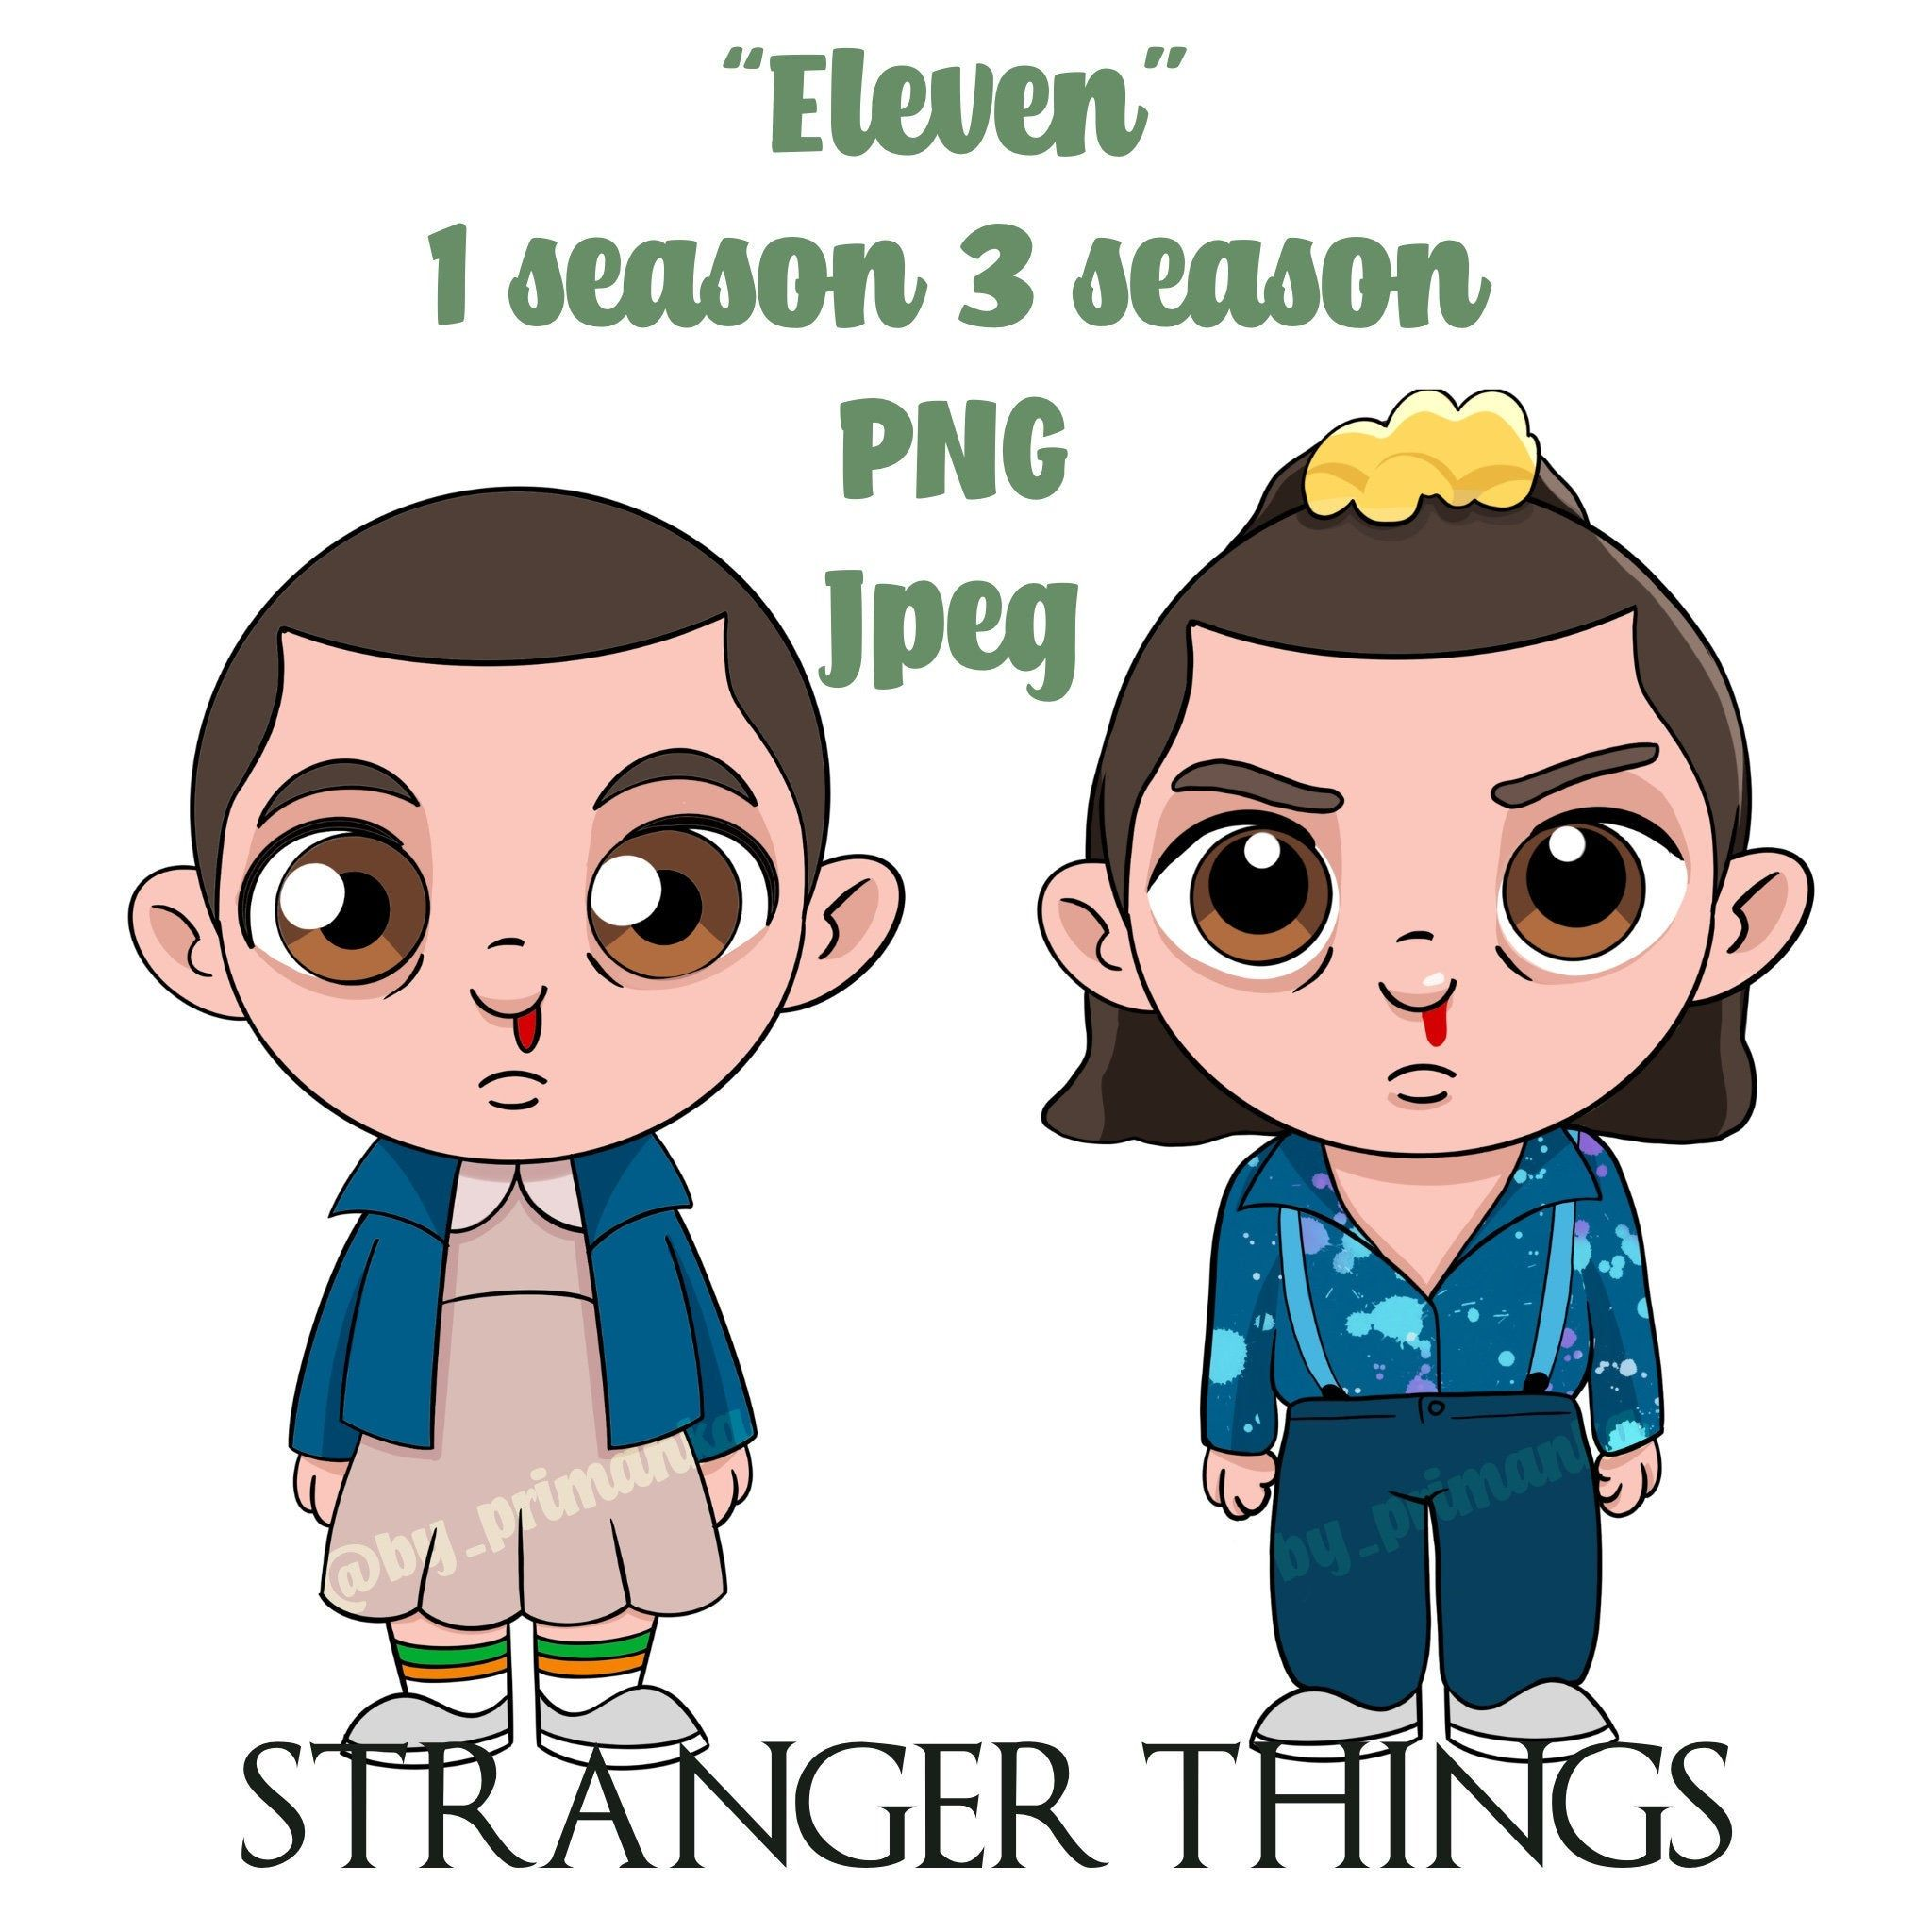 Stranger Things Eleven 11 Art Poster Printable Png Jpeg In 2020 Stranger Things Posters Printable Stranger Things Netflix